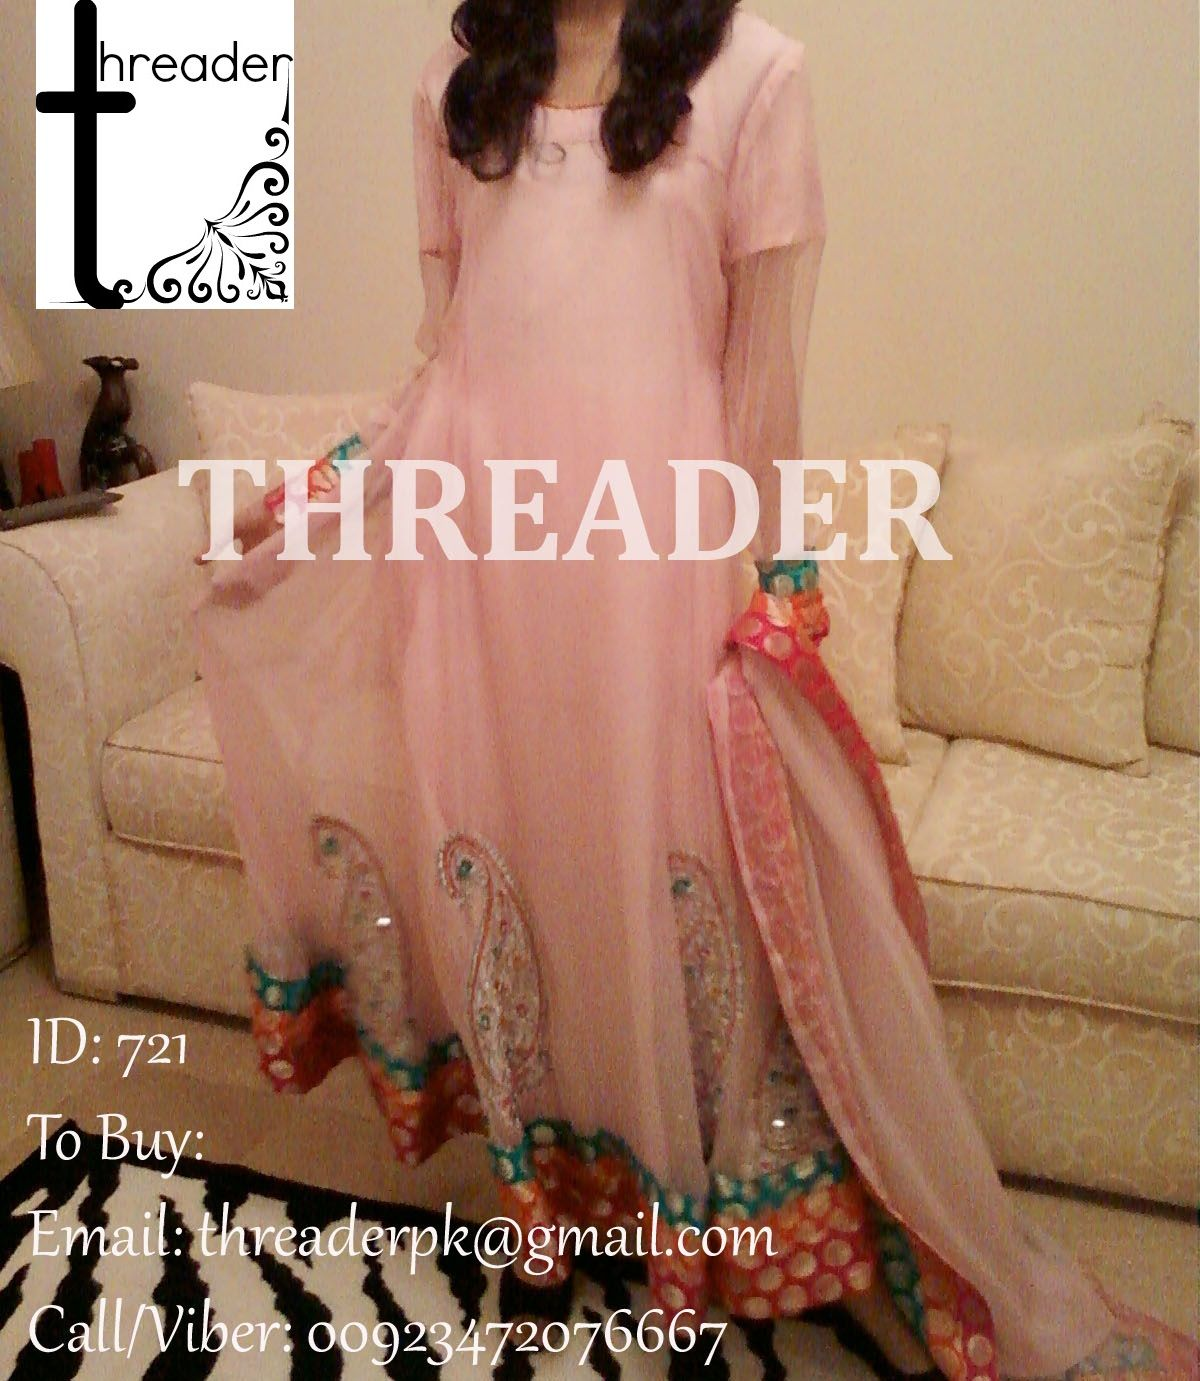 ID: 721 COST: PKR 6000/ USD 62 / GBP 41 To Buy: Email: threaderpk@gmail.com Call/Viber: 00923472076667